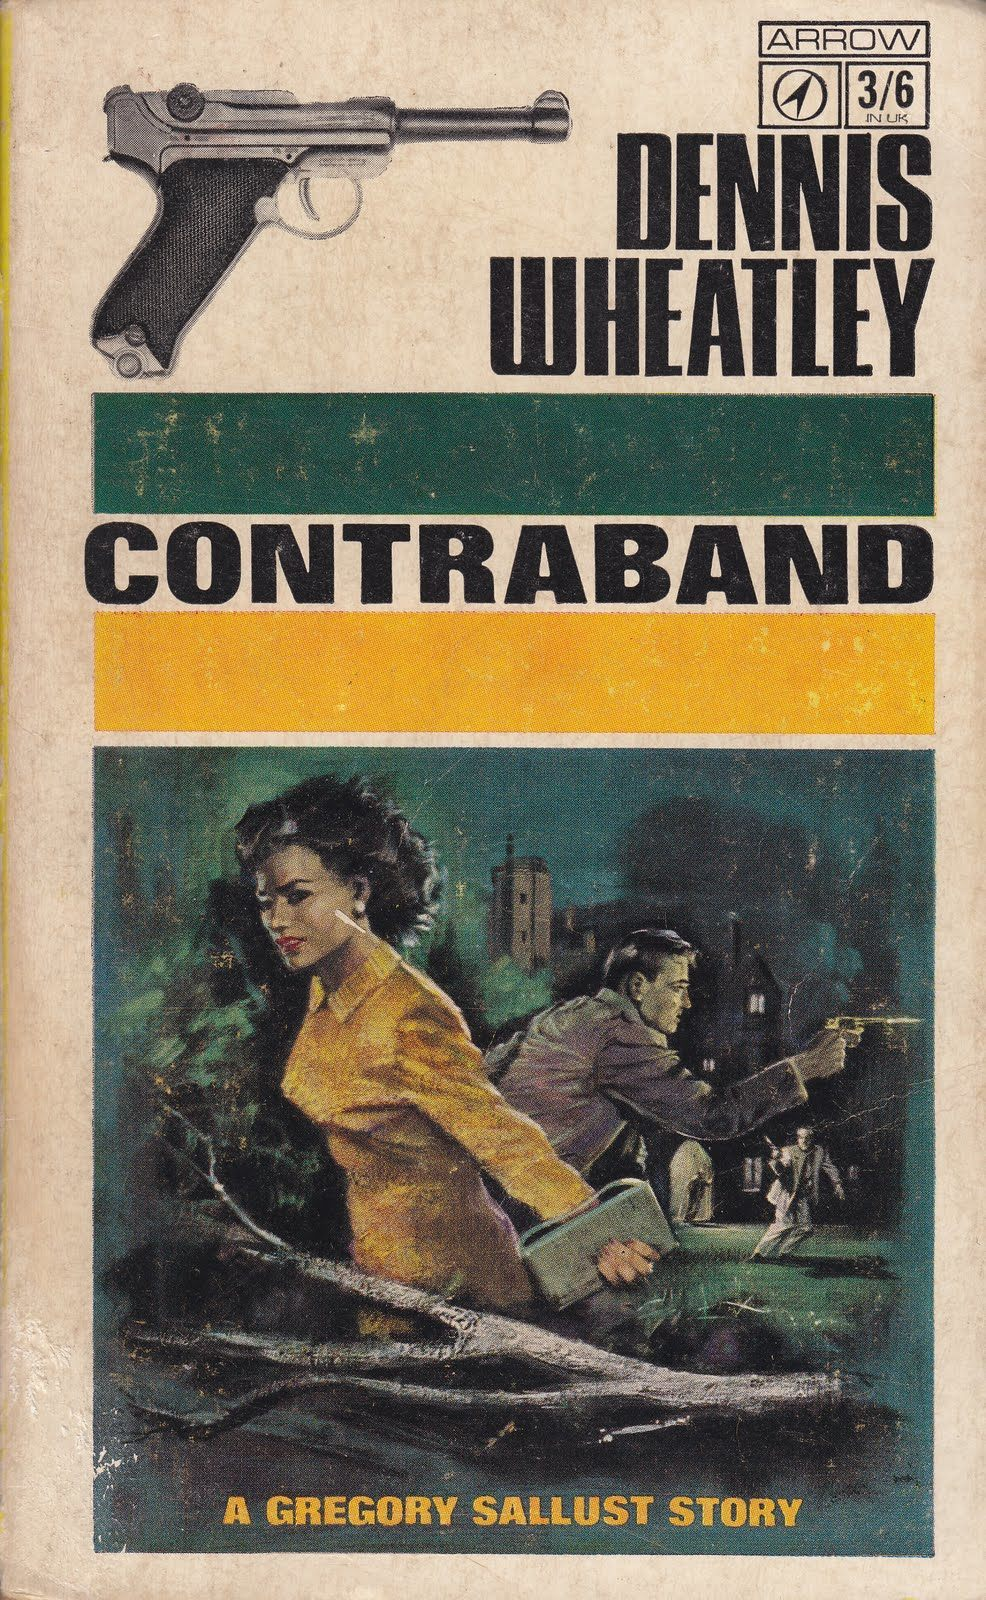 Contraband published in 1936.